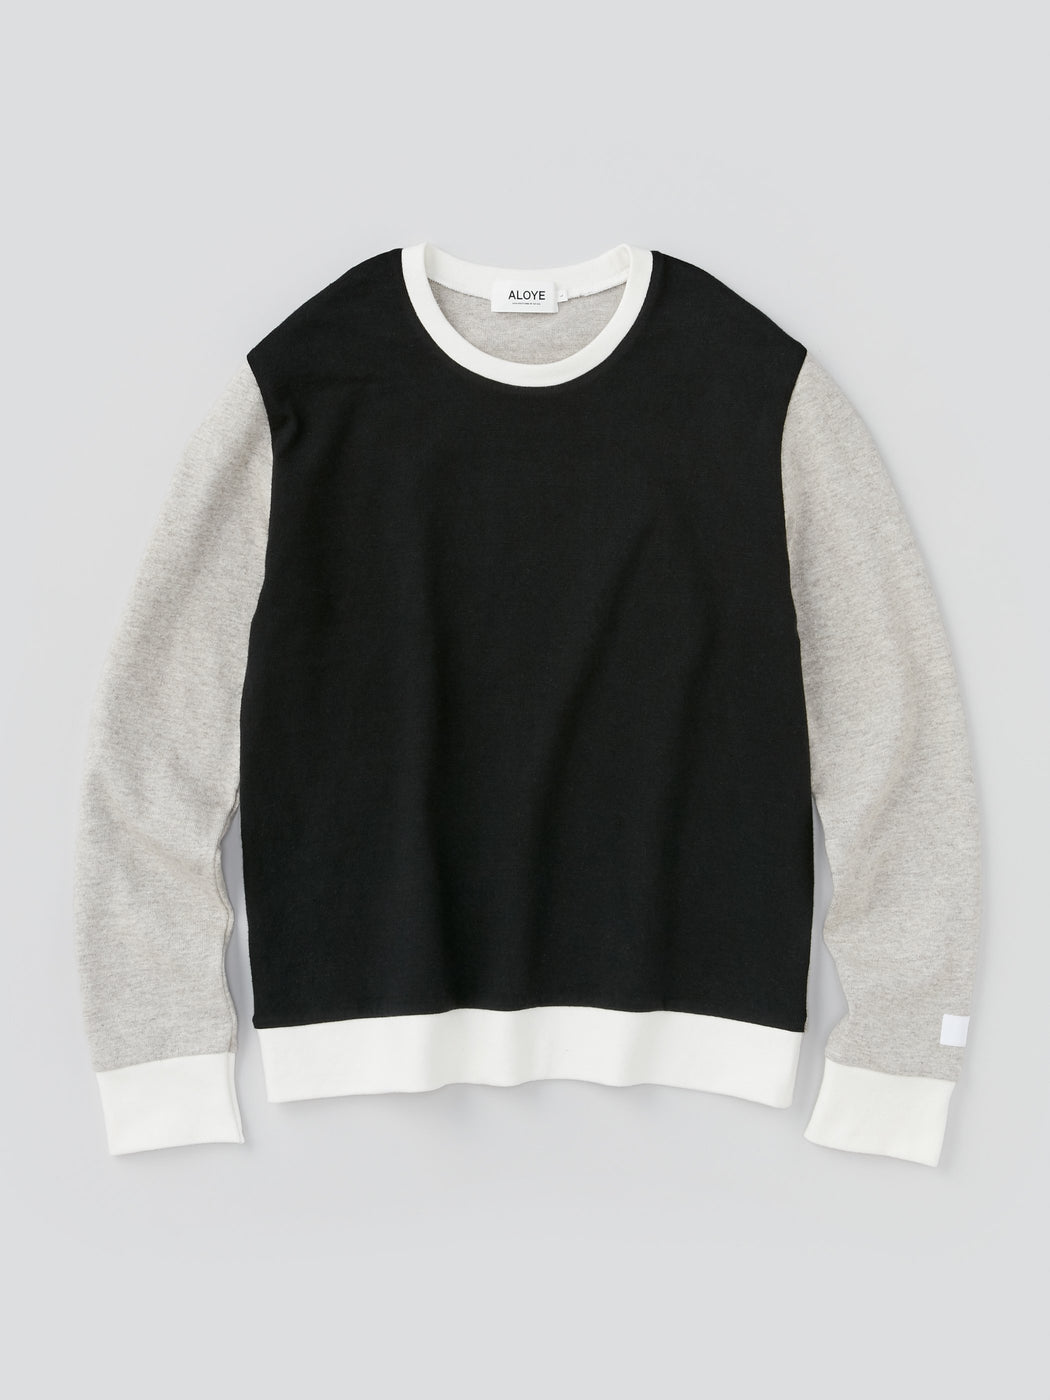 ALOYE G.F.G.S. Men's Cotton Knitted Sweater Black Color Block